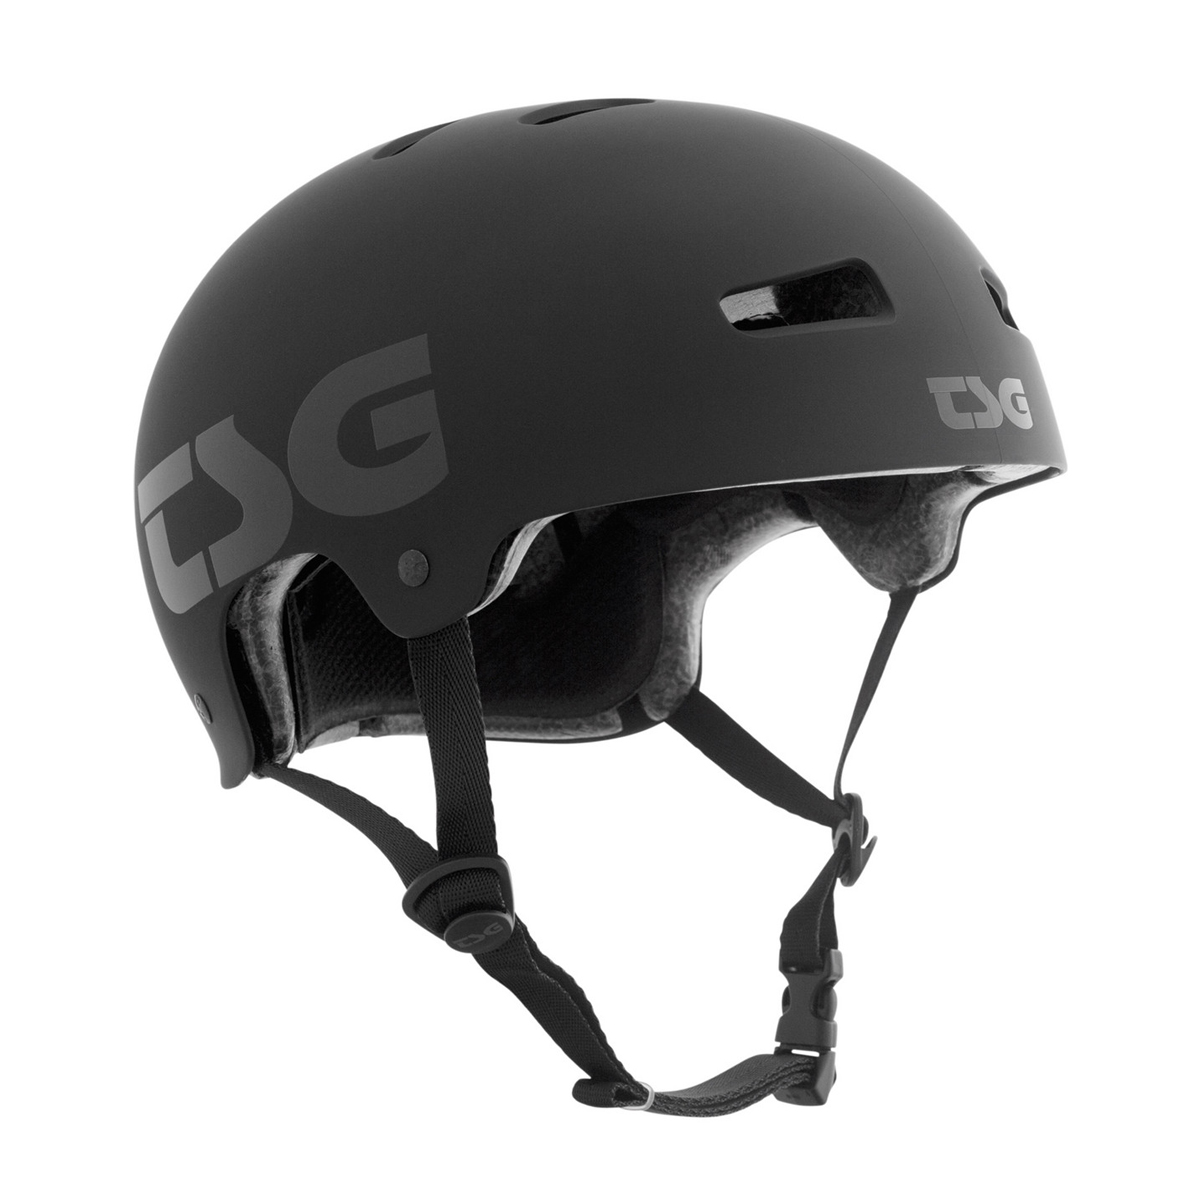 Kask TSG Kraken Graphic Design Property Black